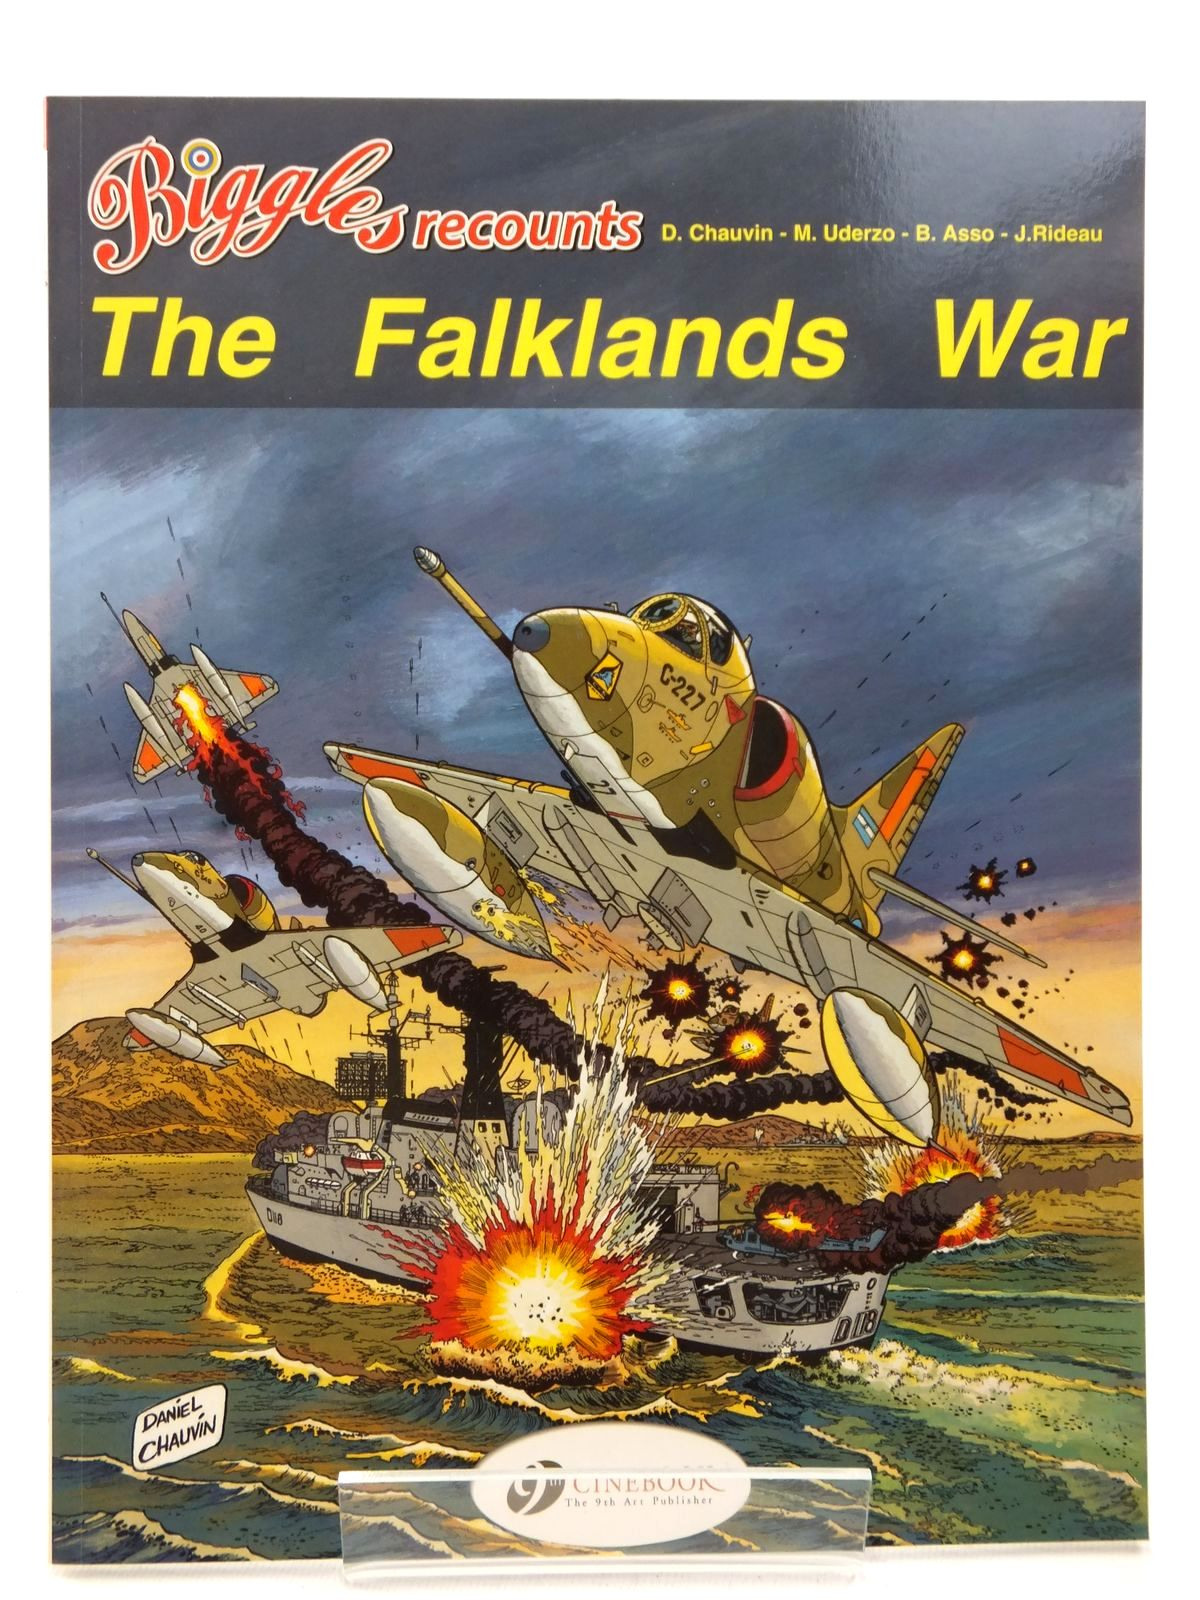 Photo of BIGGLES RECOUNTS THE FALKLANDS WAR written by Asso, Bernard<br />Rideau, Joel illustrated by Chauvin, Daniel<br />Uderzo, Marcel published by Cinebook Ltd (STOCK CODE: 2123155)  for sale by Stella & Rose's Books